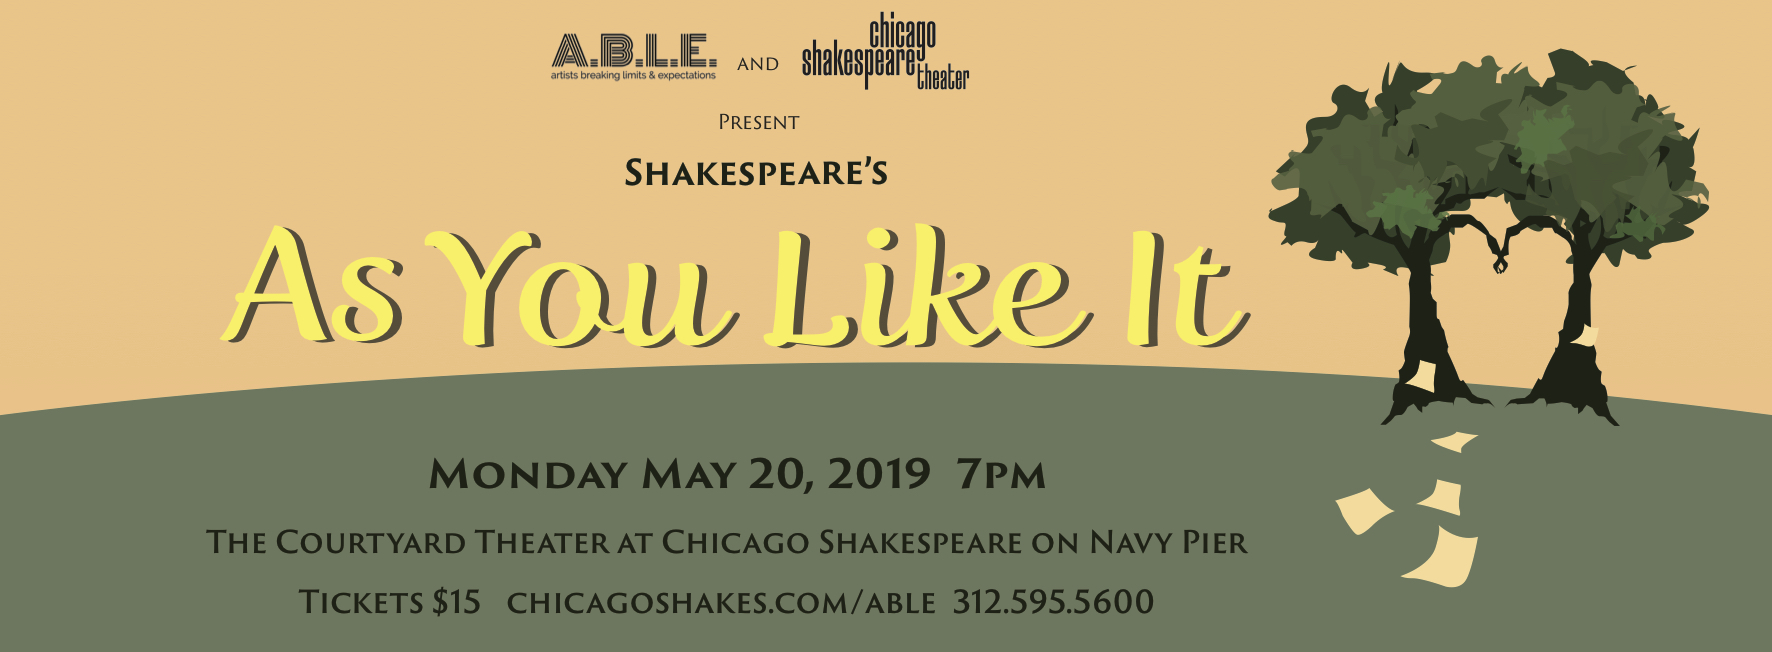 As You Like It FB Banner.jpg